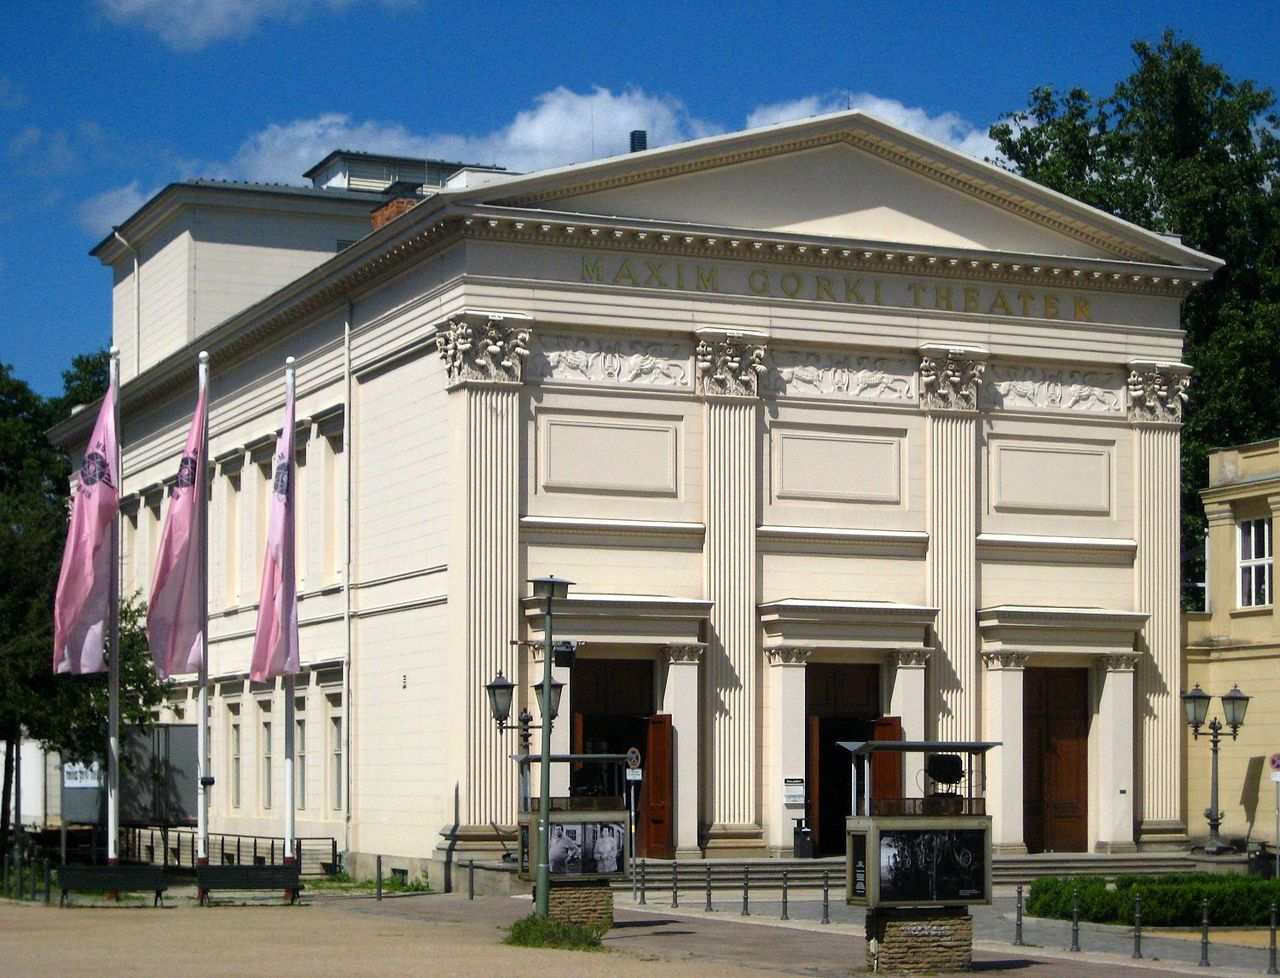 Bild Maxim Gorki Theater Berlin